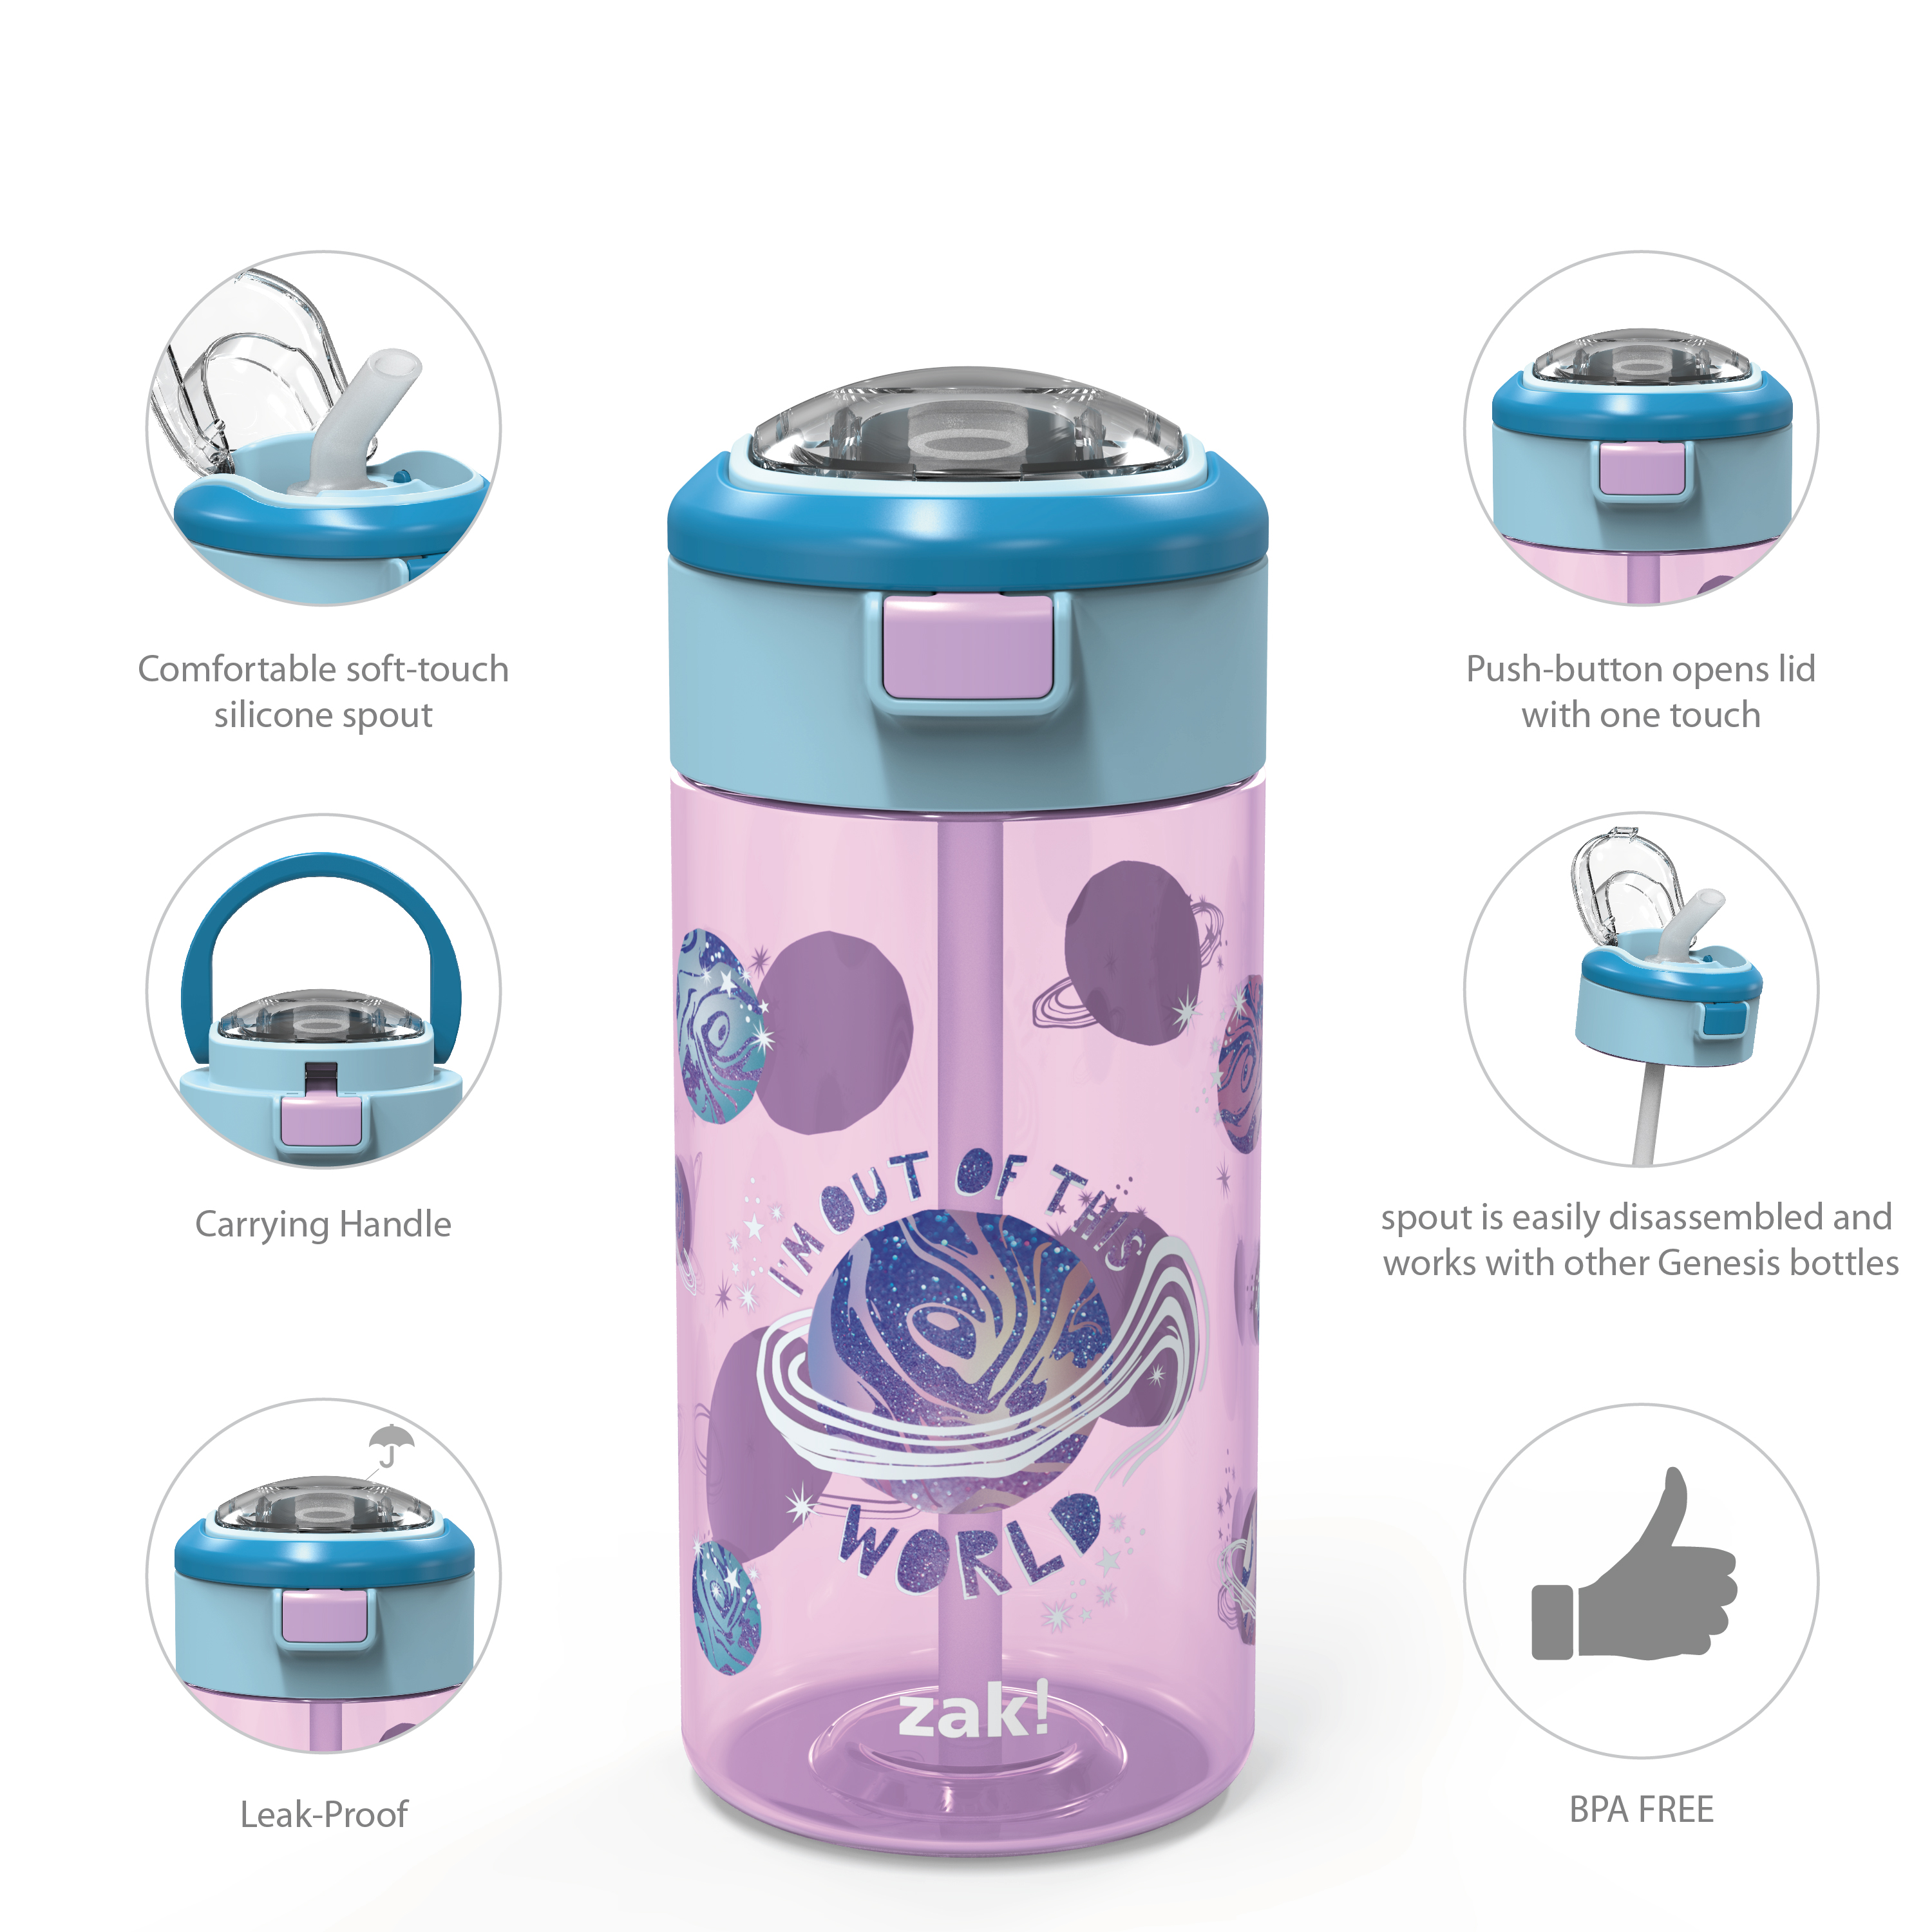 Genesis 18 ounce Water Bottles, Planet, 2-piece set slideshow image 9